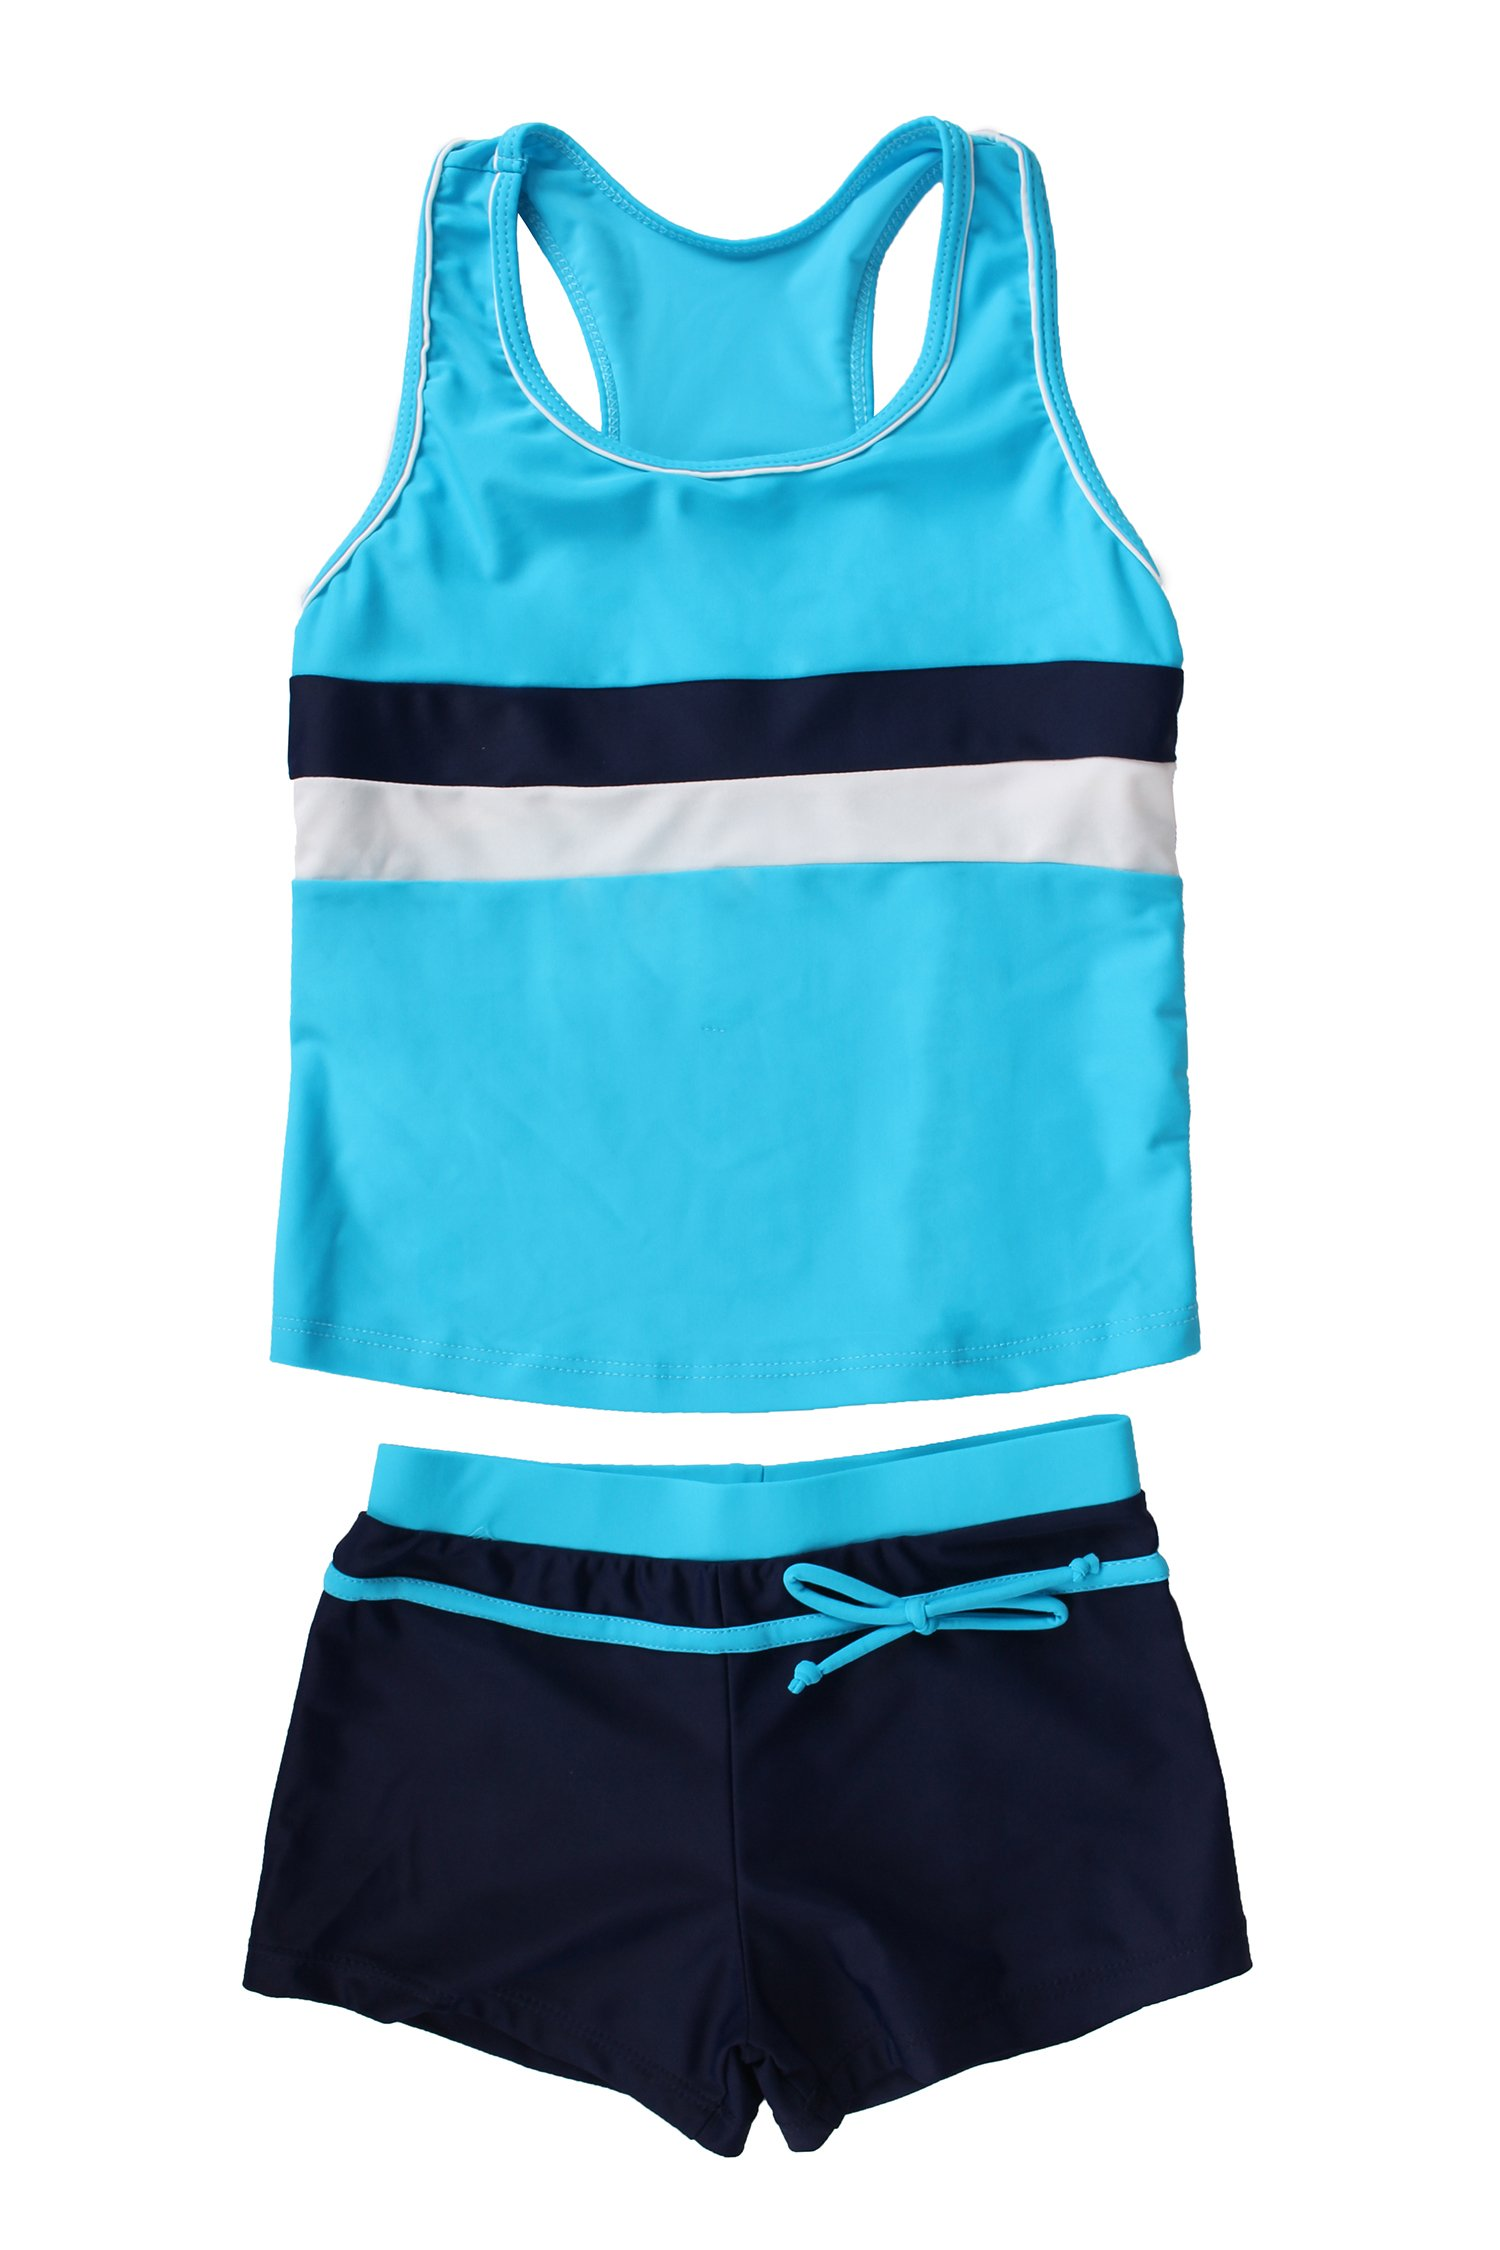 c5f3896911 JerrisApparel Little Girls' Summer Two Piece Boyshort Tankini Kids Swimsuit